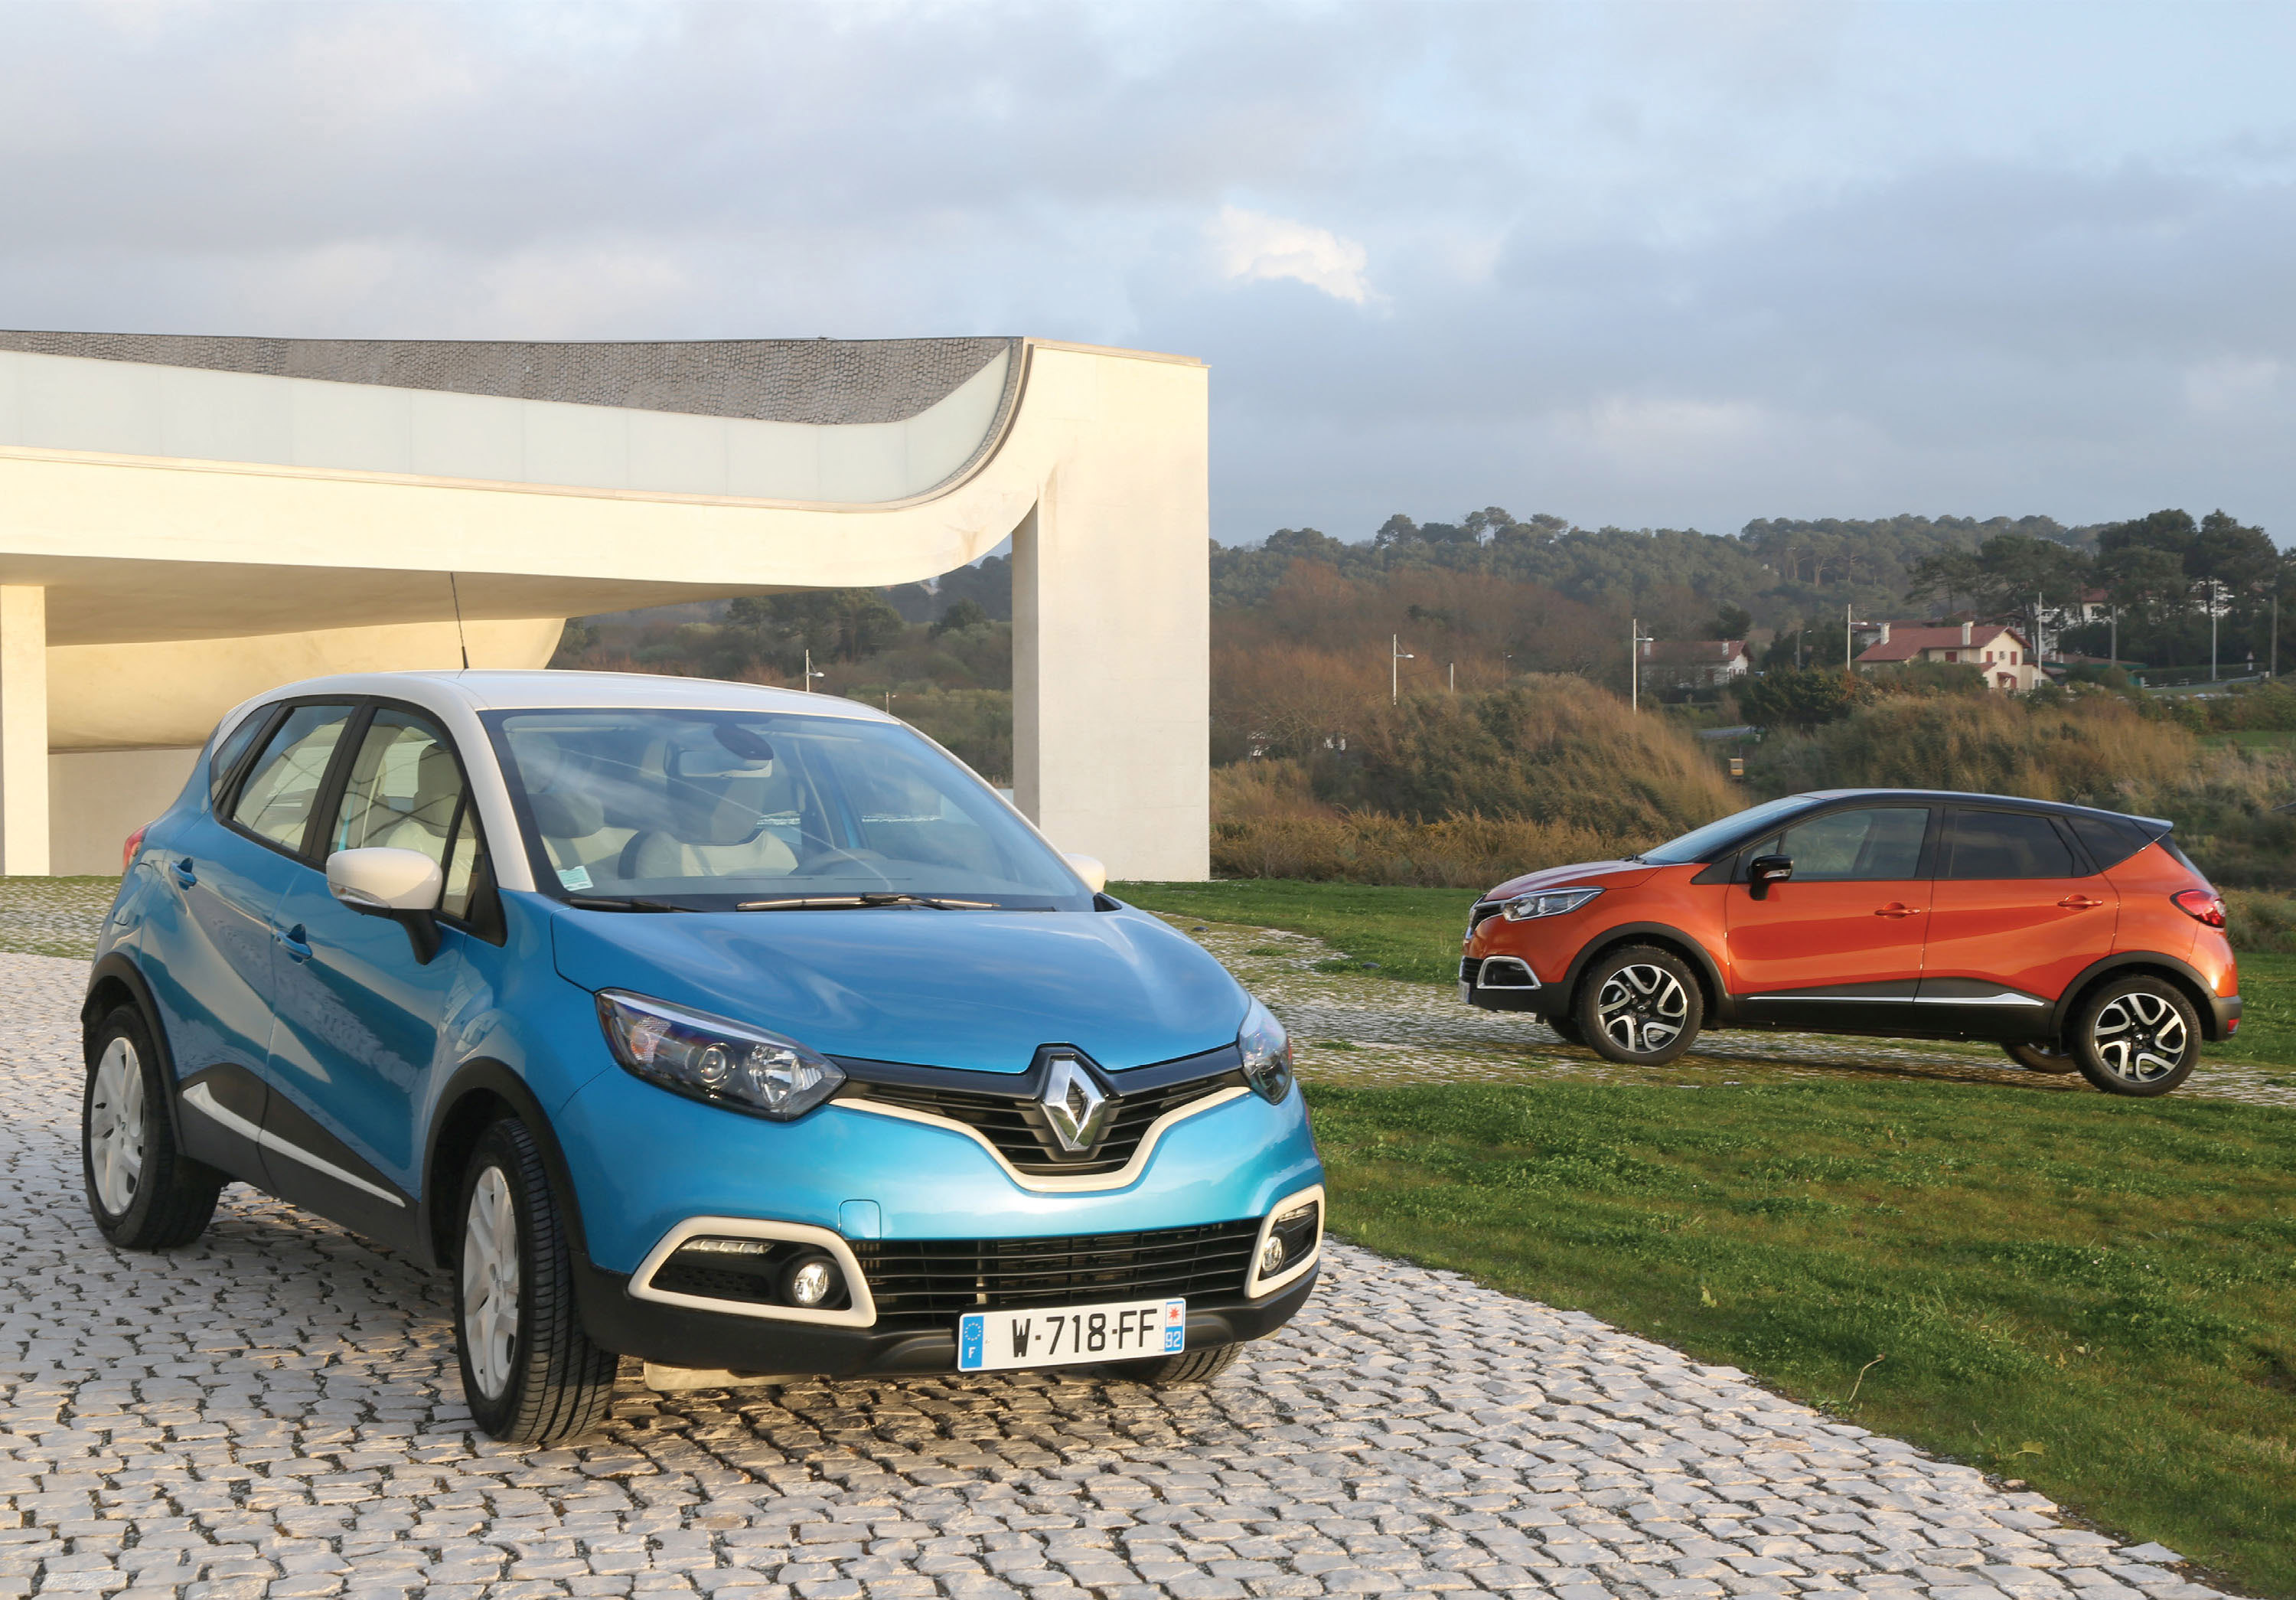 2013 renault captur a better urban crossover for Renault captur grigia